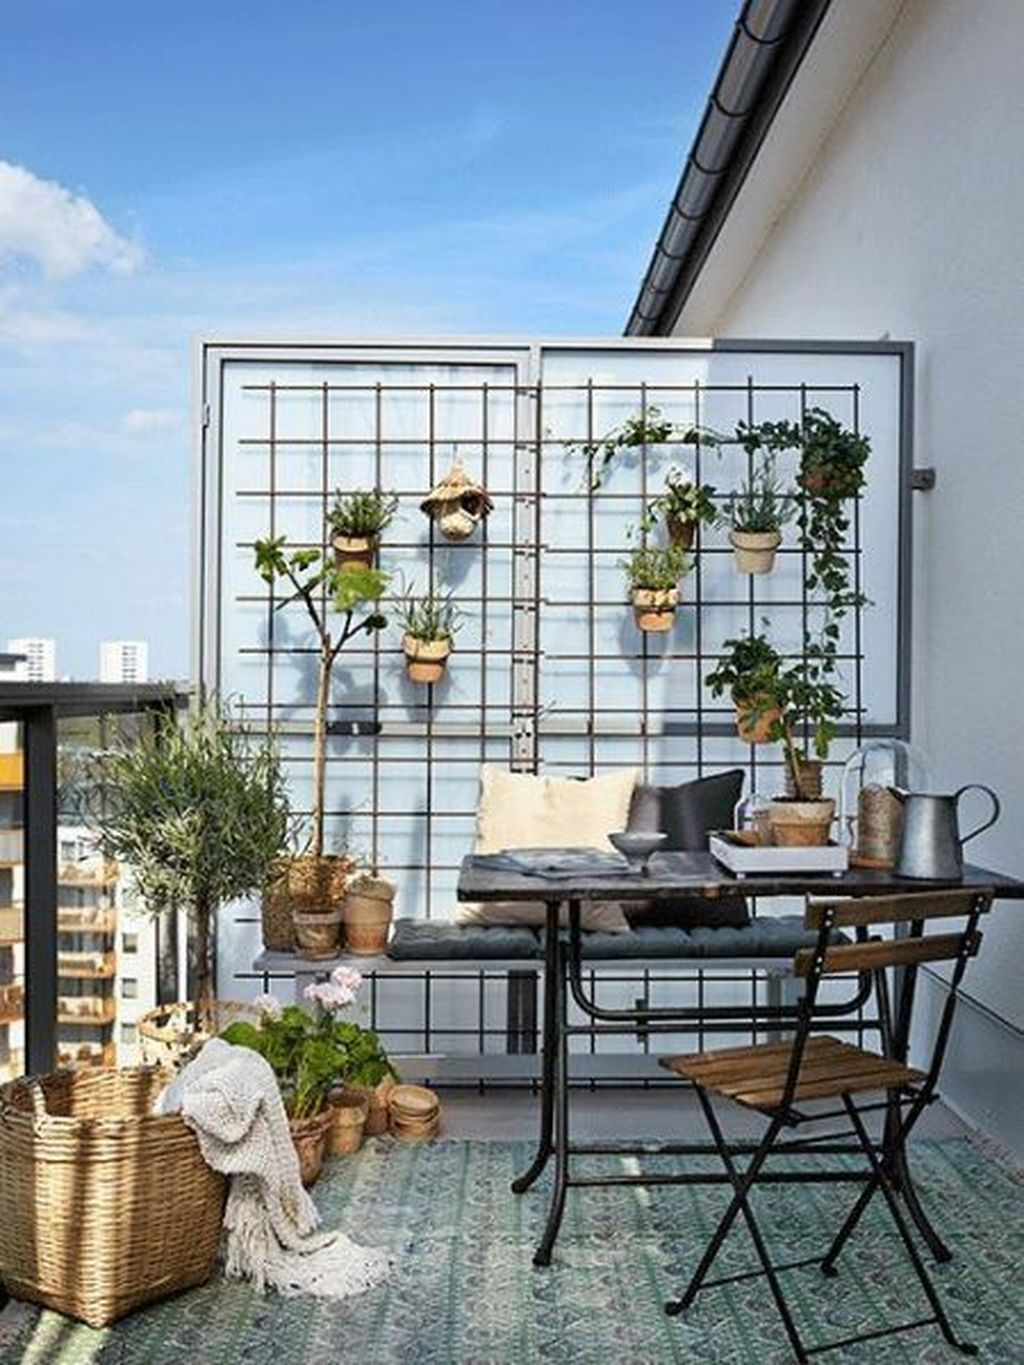 Popular Rustic Balcony Decoration Ideas Balcony Design Small Balcony Garden Small Outdoor Patios